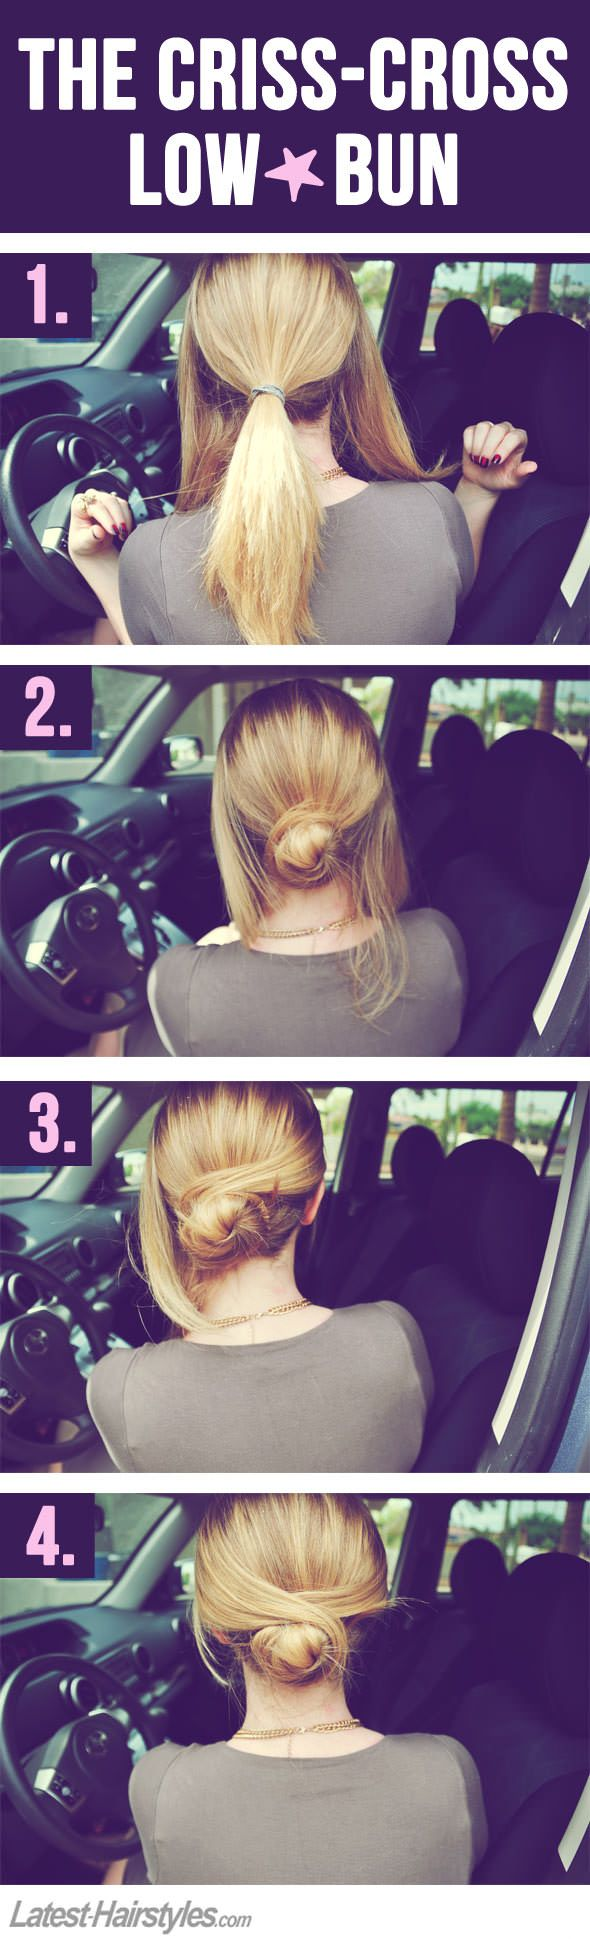 super quick u easy hairstyles you can do in your parked car